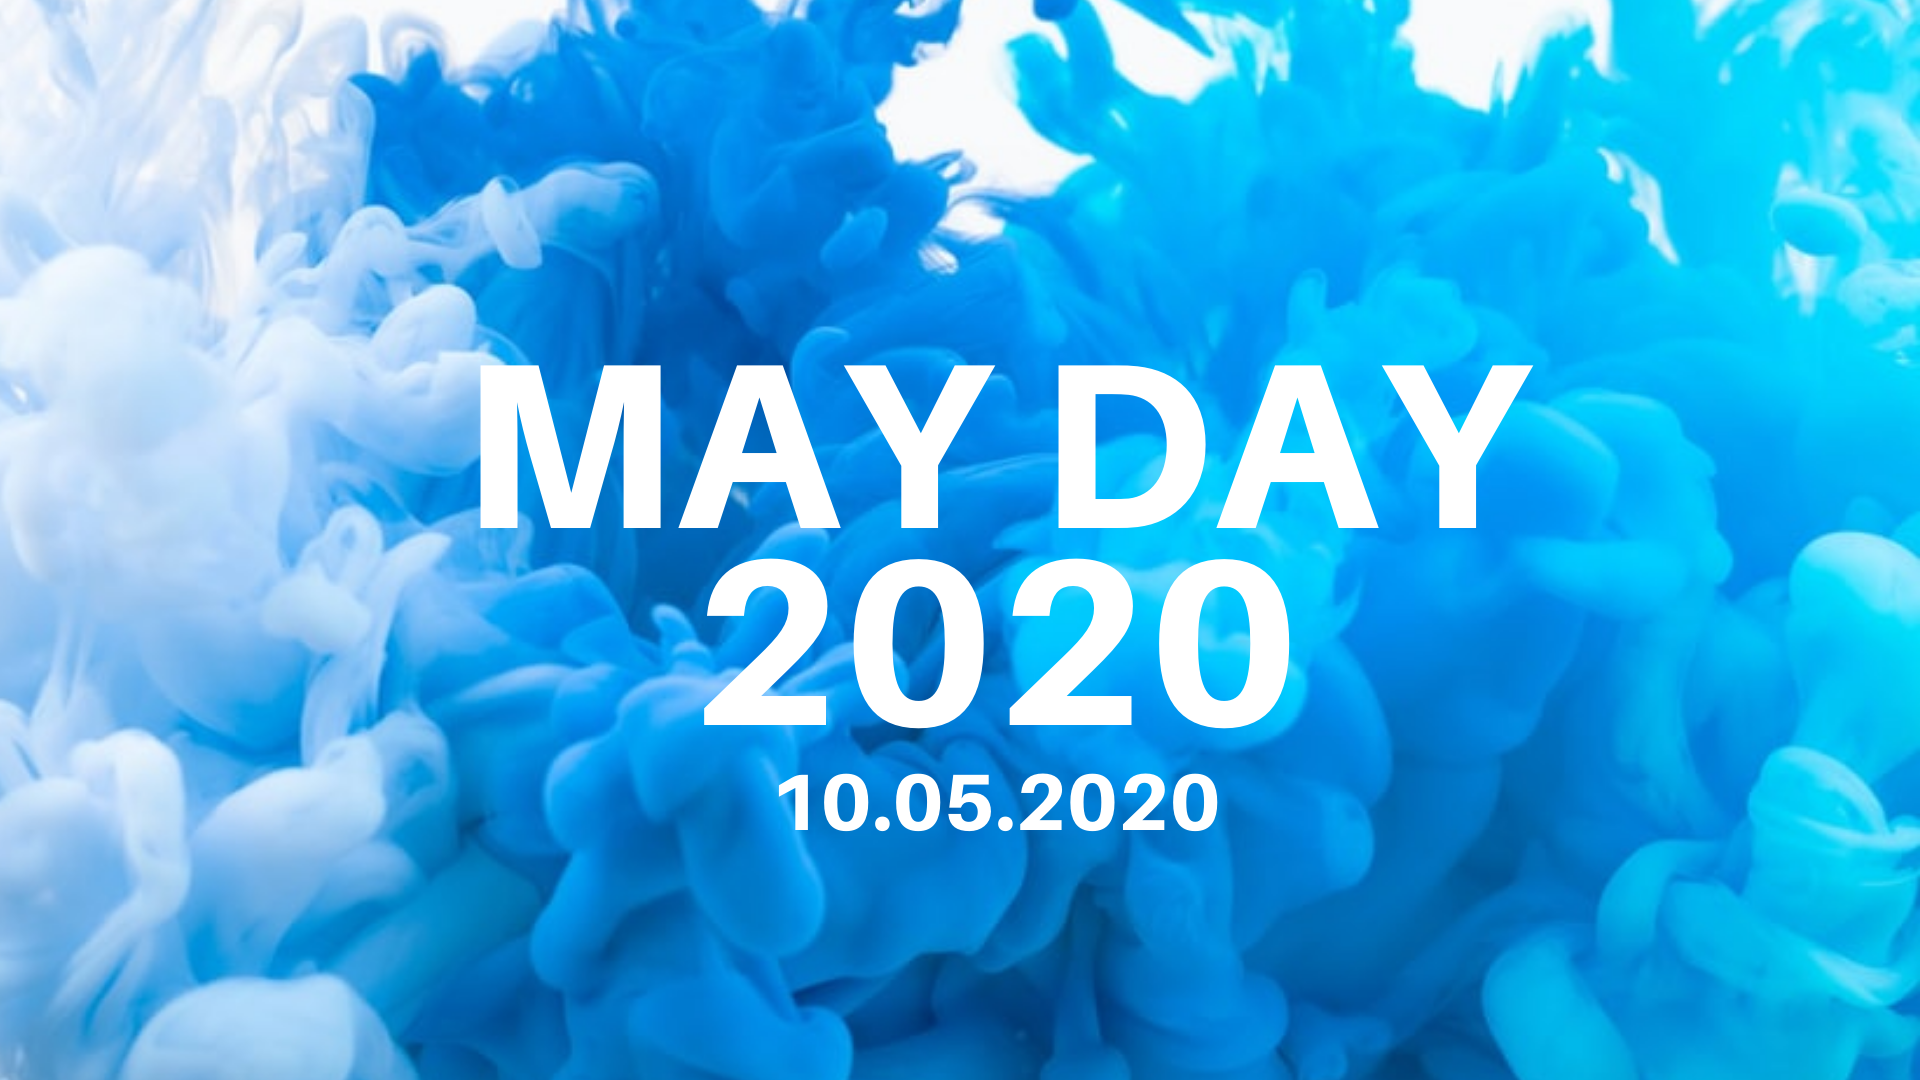 when is may day 2020